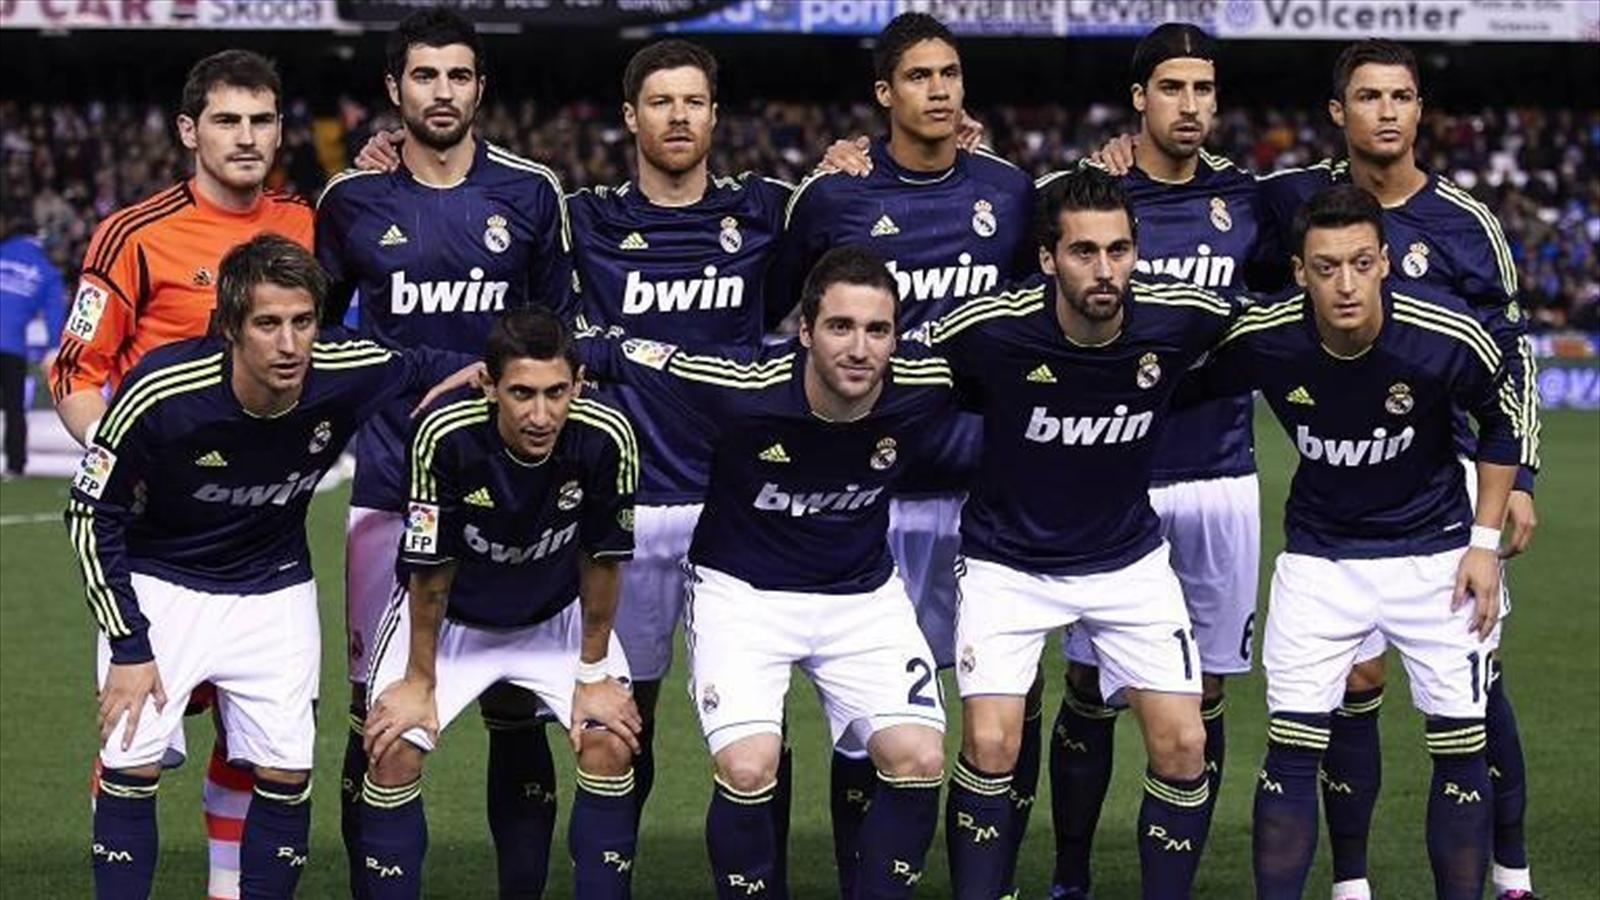 the real madrid football club Real madrid football club - get the latest news, fixtures, results, match reports, videos, photos, squad and player stats on sky sports football.